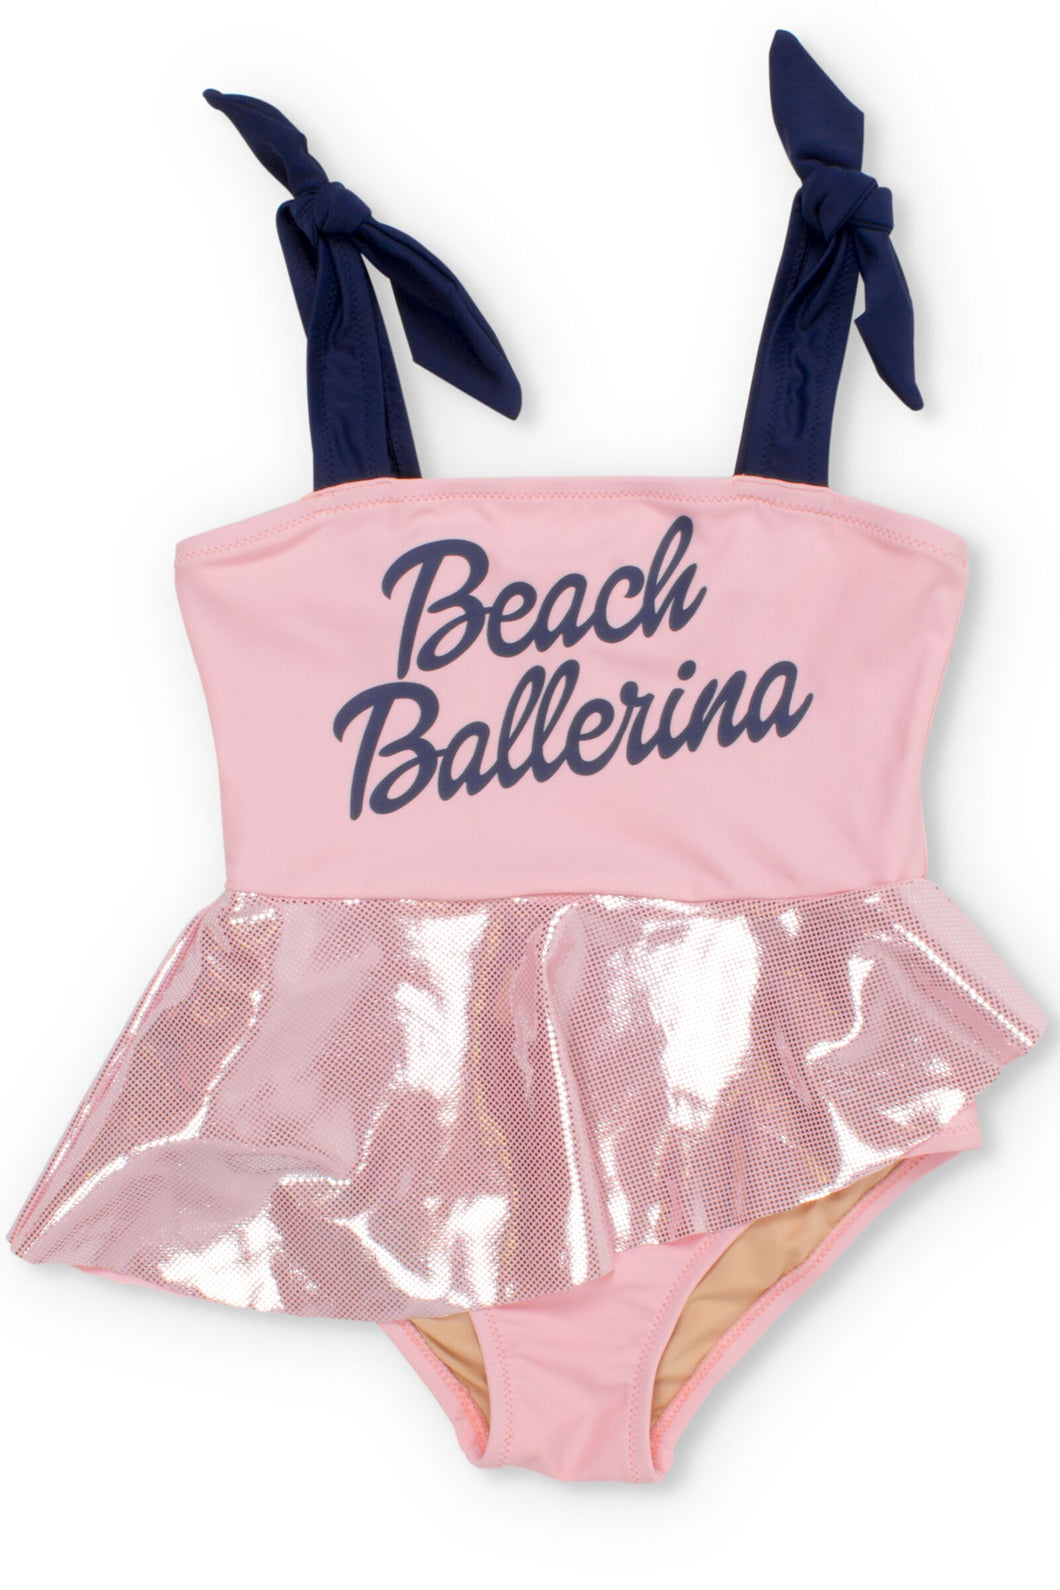 Beach Ballerina One Piece Swimsuit